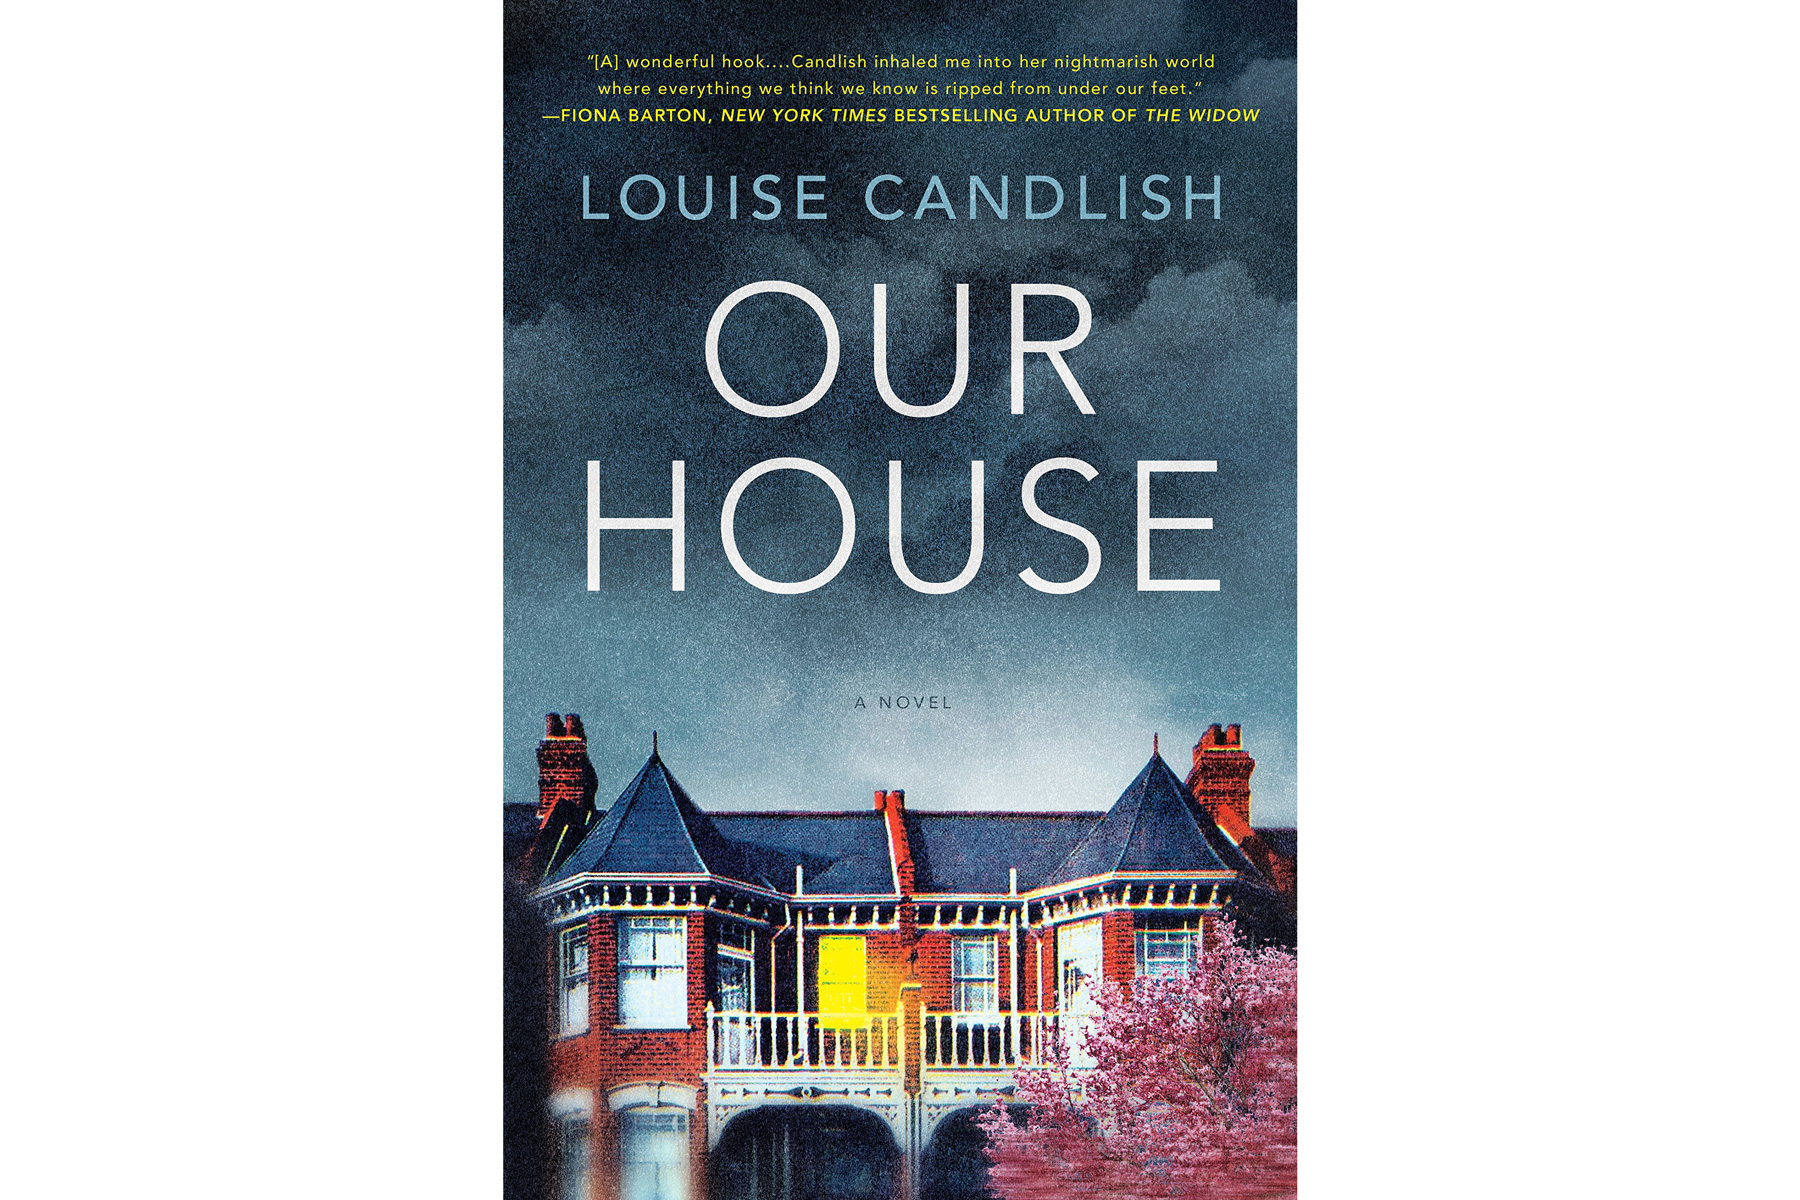 Best Books of 2018 Our House, by Louise Candlish